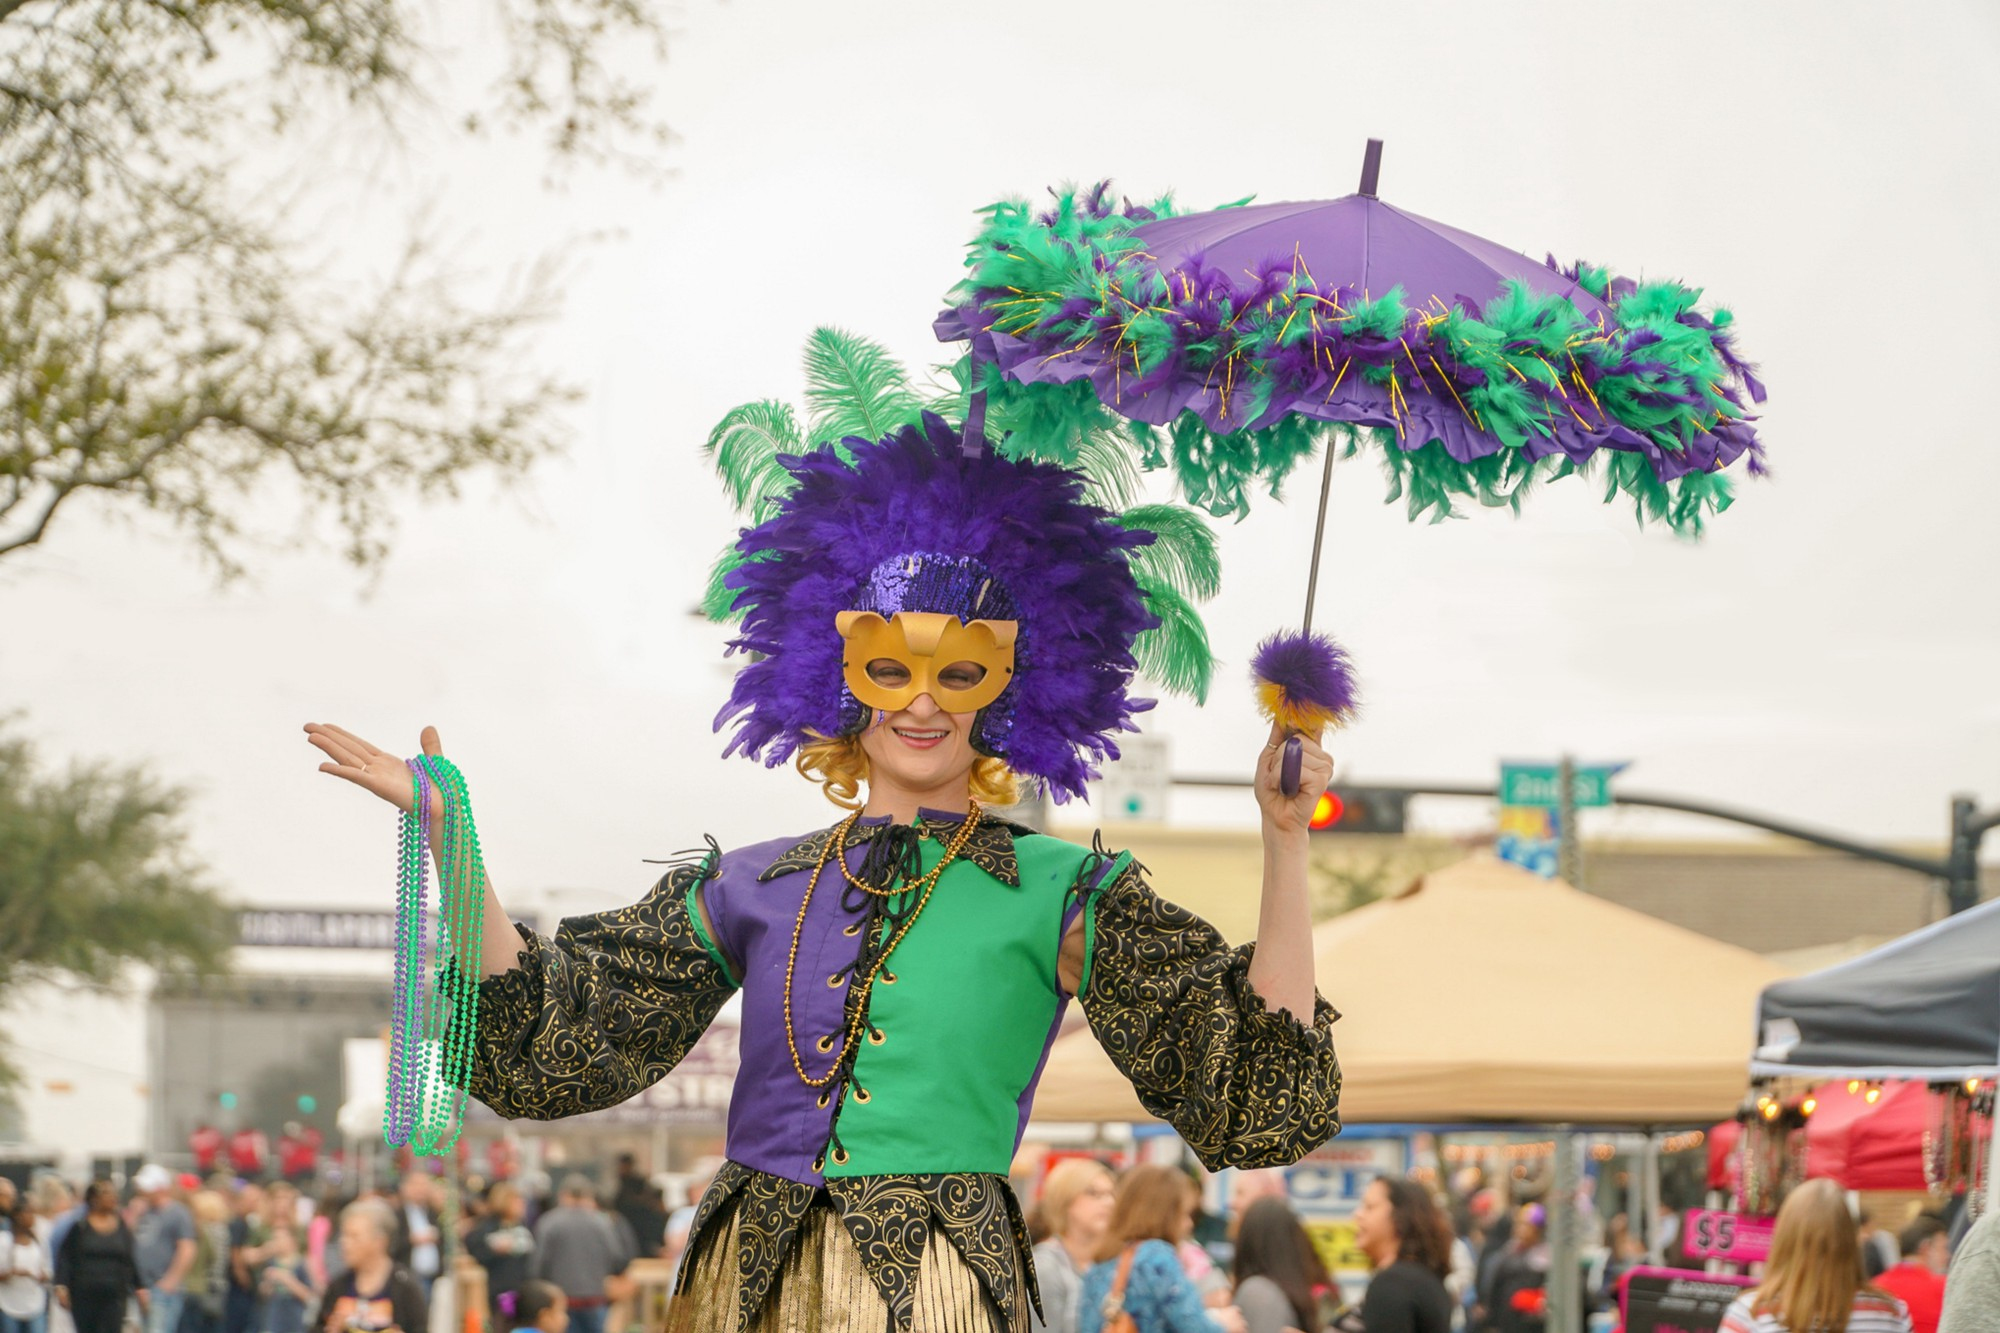 a Mardi Gras parade celebrant with feathers and a mask